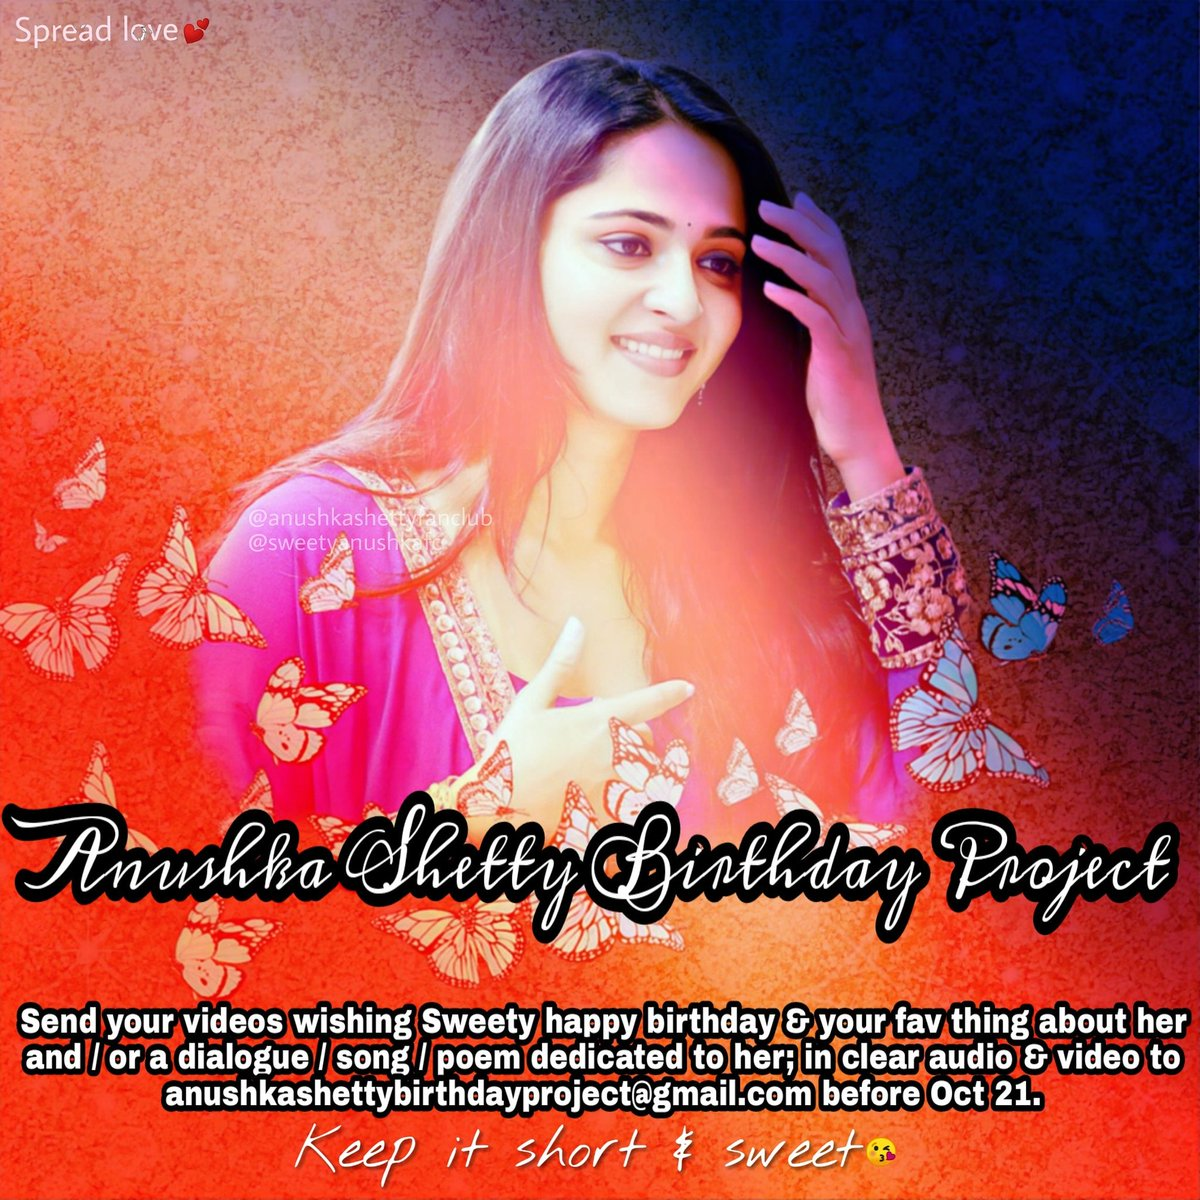 RT & spread the word.😘💕 #AnushkaShettyBirthdayProject Send your videos wishing Sweety a happy birthday, your fav thing about her and/or a dialogue/ song/ poem for her in any language (clear audio & video) to anushkashettybirthdayproject@gmail.com before Oct21. #AnushkaShetty